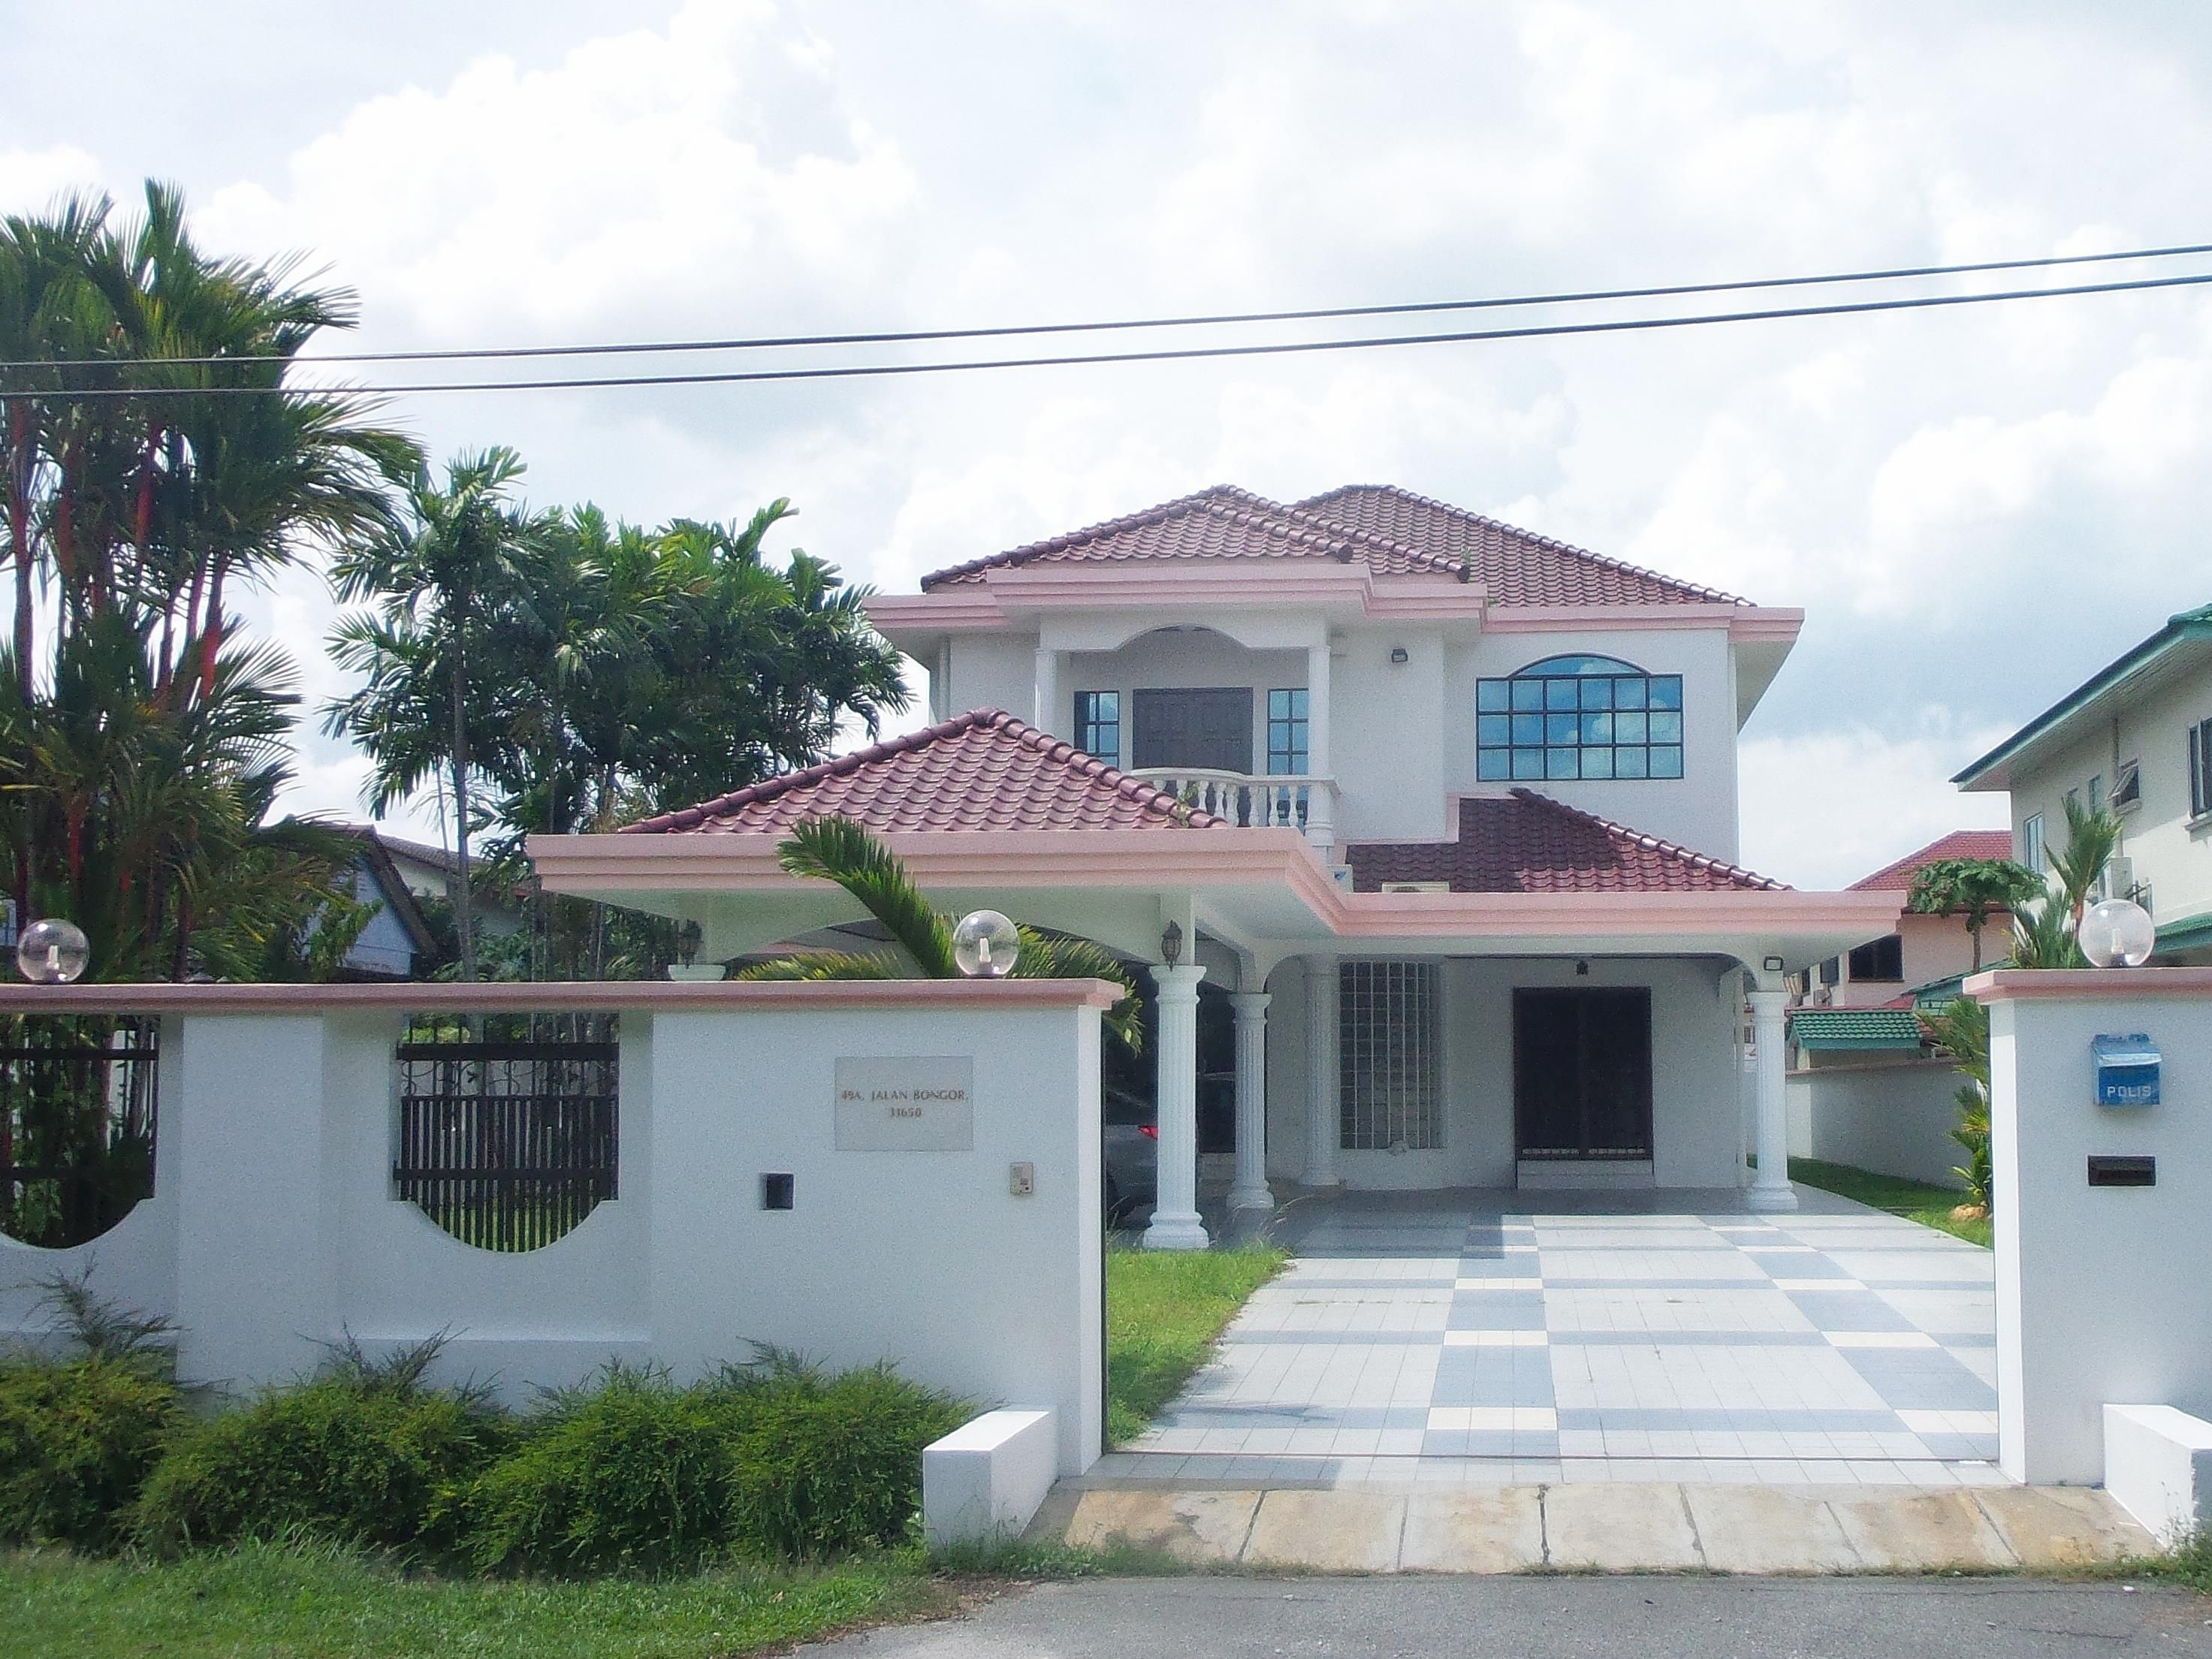 Ipoh Pasir Puteh Bungalow Homestay Malaysia Asia Set In A Prime Location Of